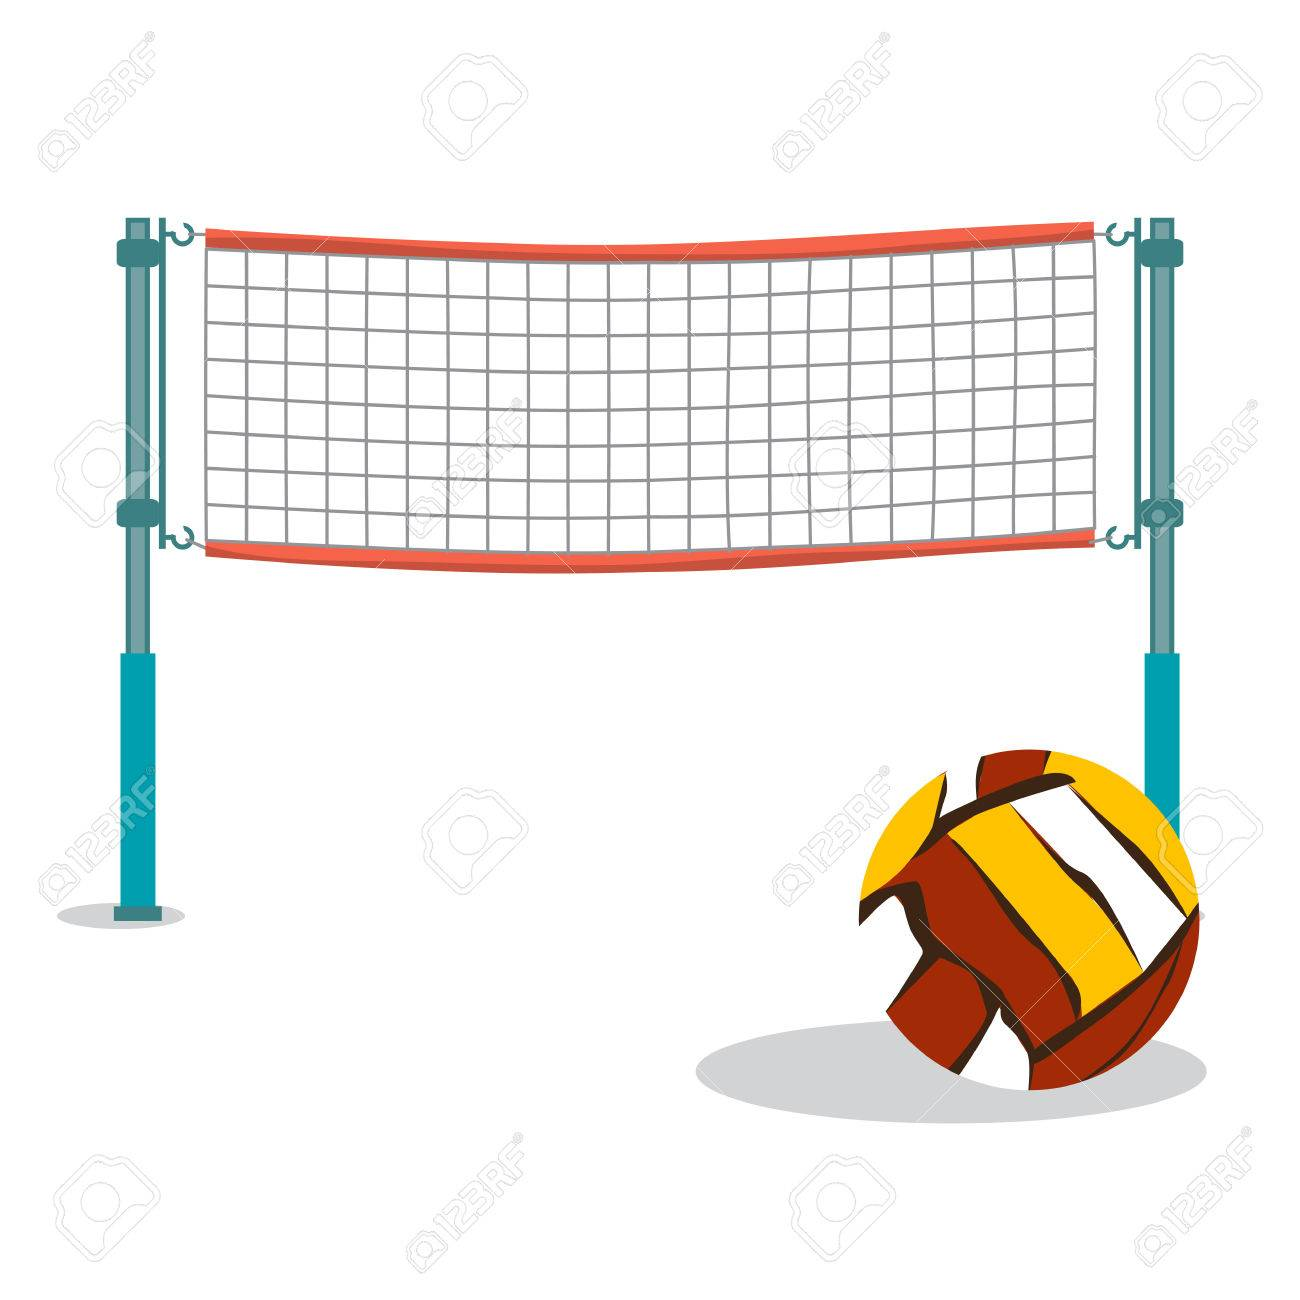 Beach Volleyball And Net Flat Cartoon Vector Illustration On Royalty Free Cliparts Vectors And Stock Illustration Image 58465242